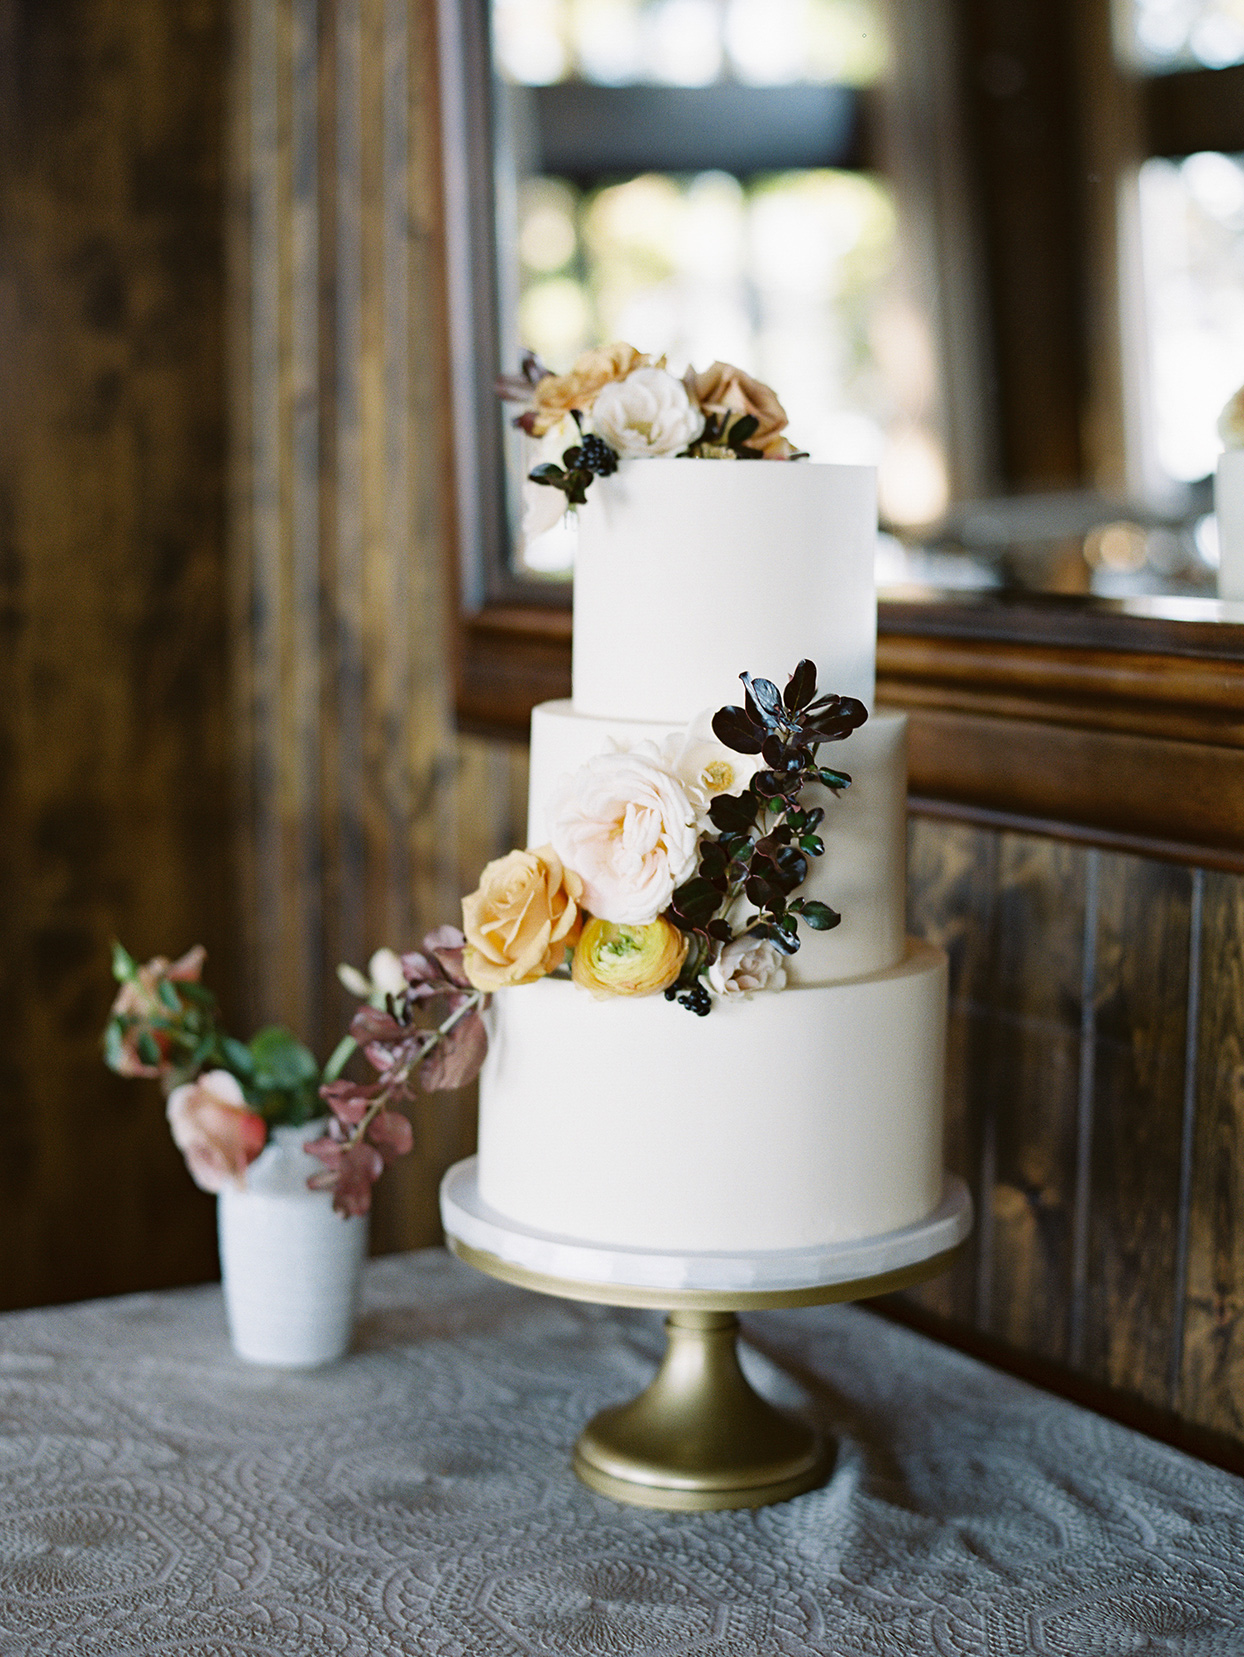 alexandra david wedding three tiered wedding cake with flowers